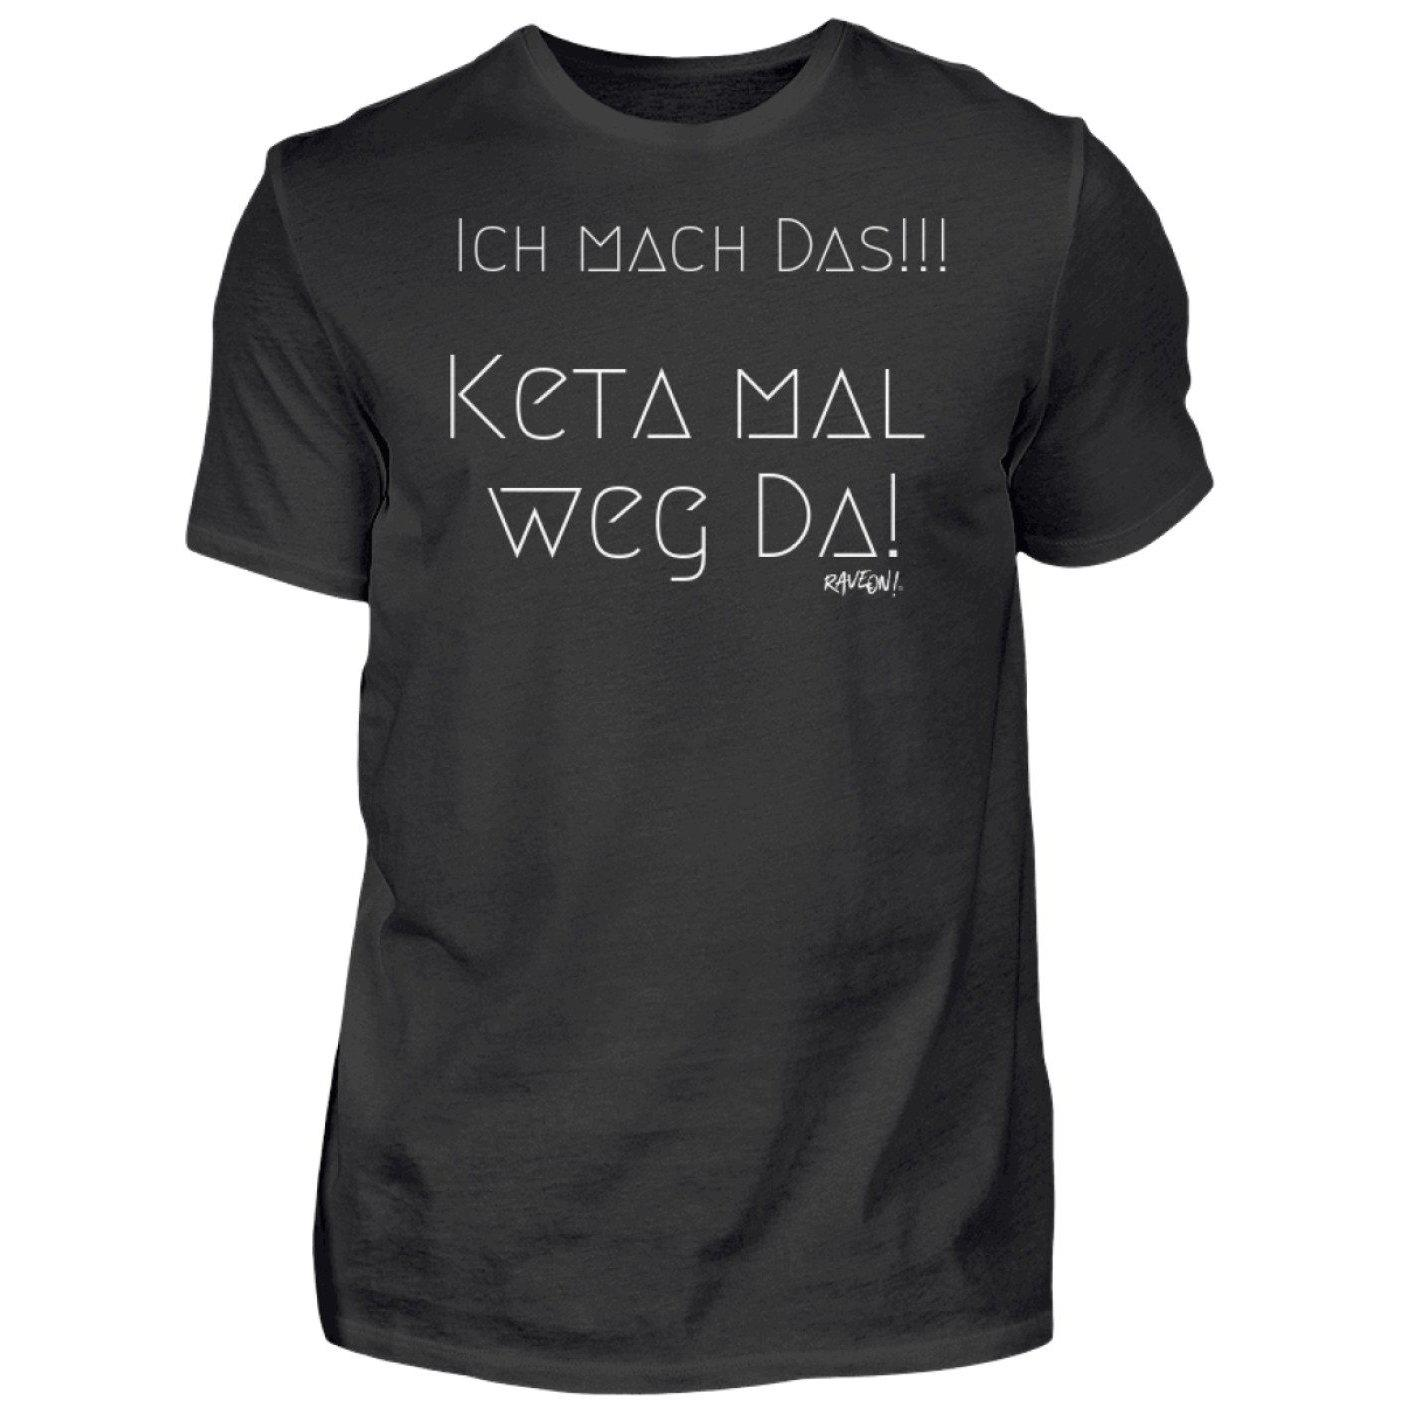 I do that !!! Keta - Rave On!® - Men Shirt Men Basic T-Shirt Black / S - Rave On!® the club & techno scene shop for cool young fashion streetwear style & fashion outfits + sexy festival 420 stuff